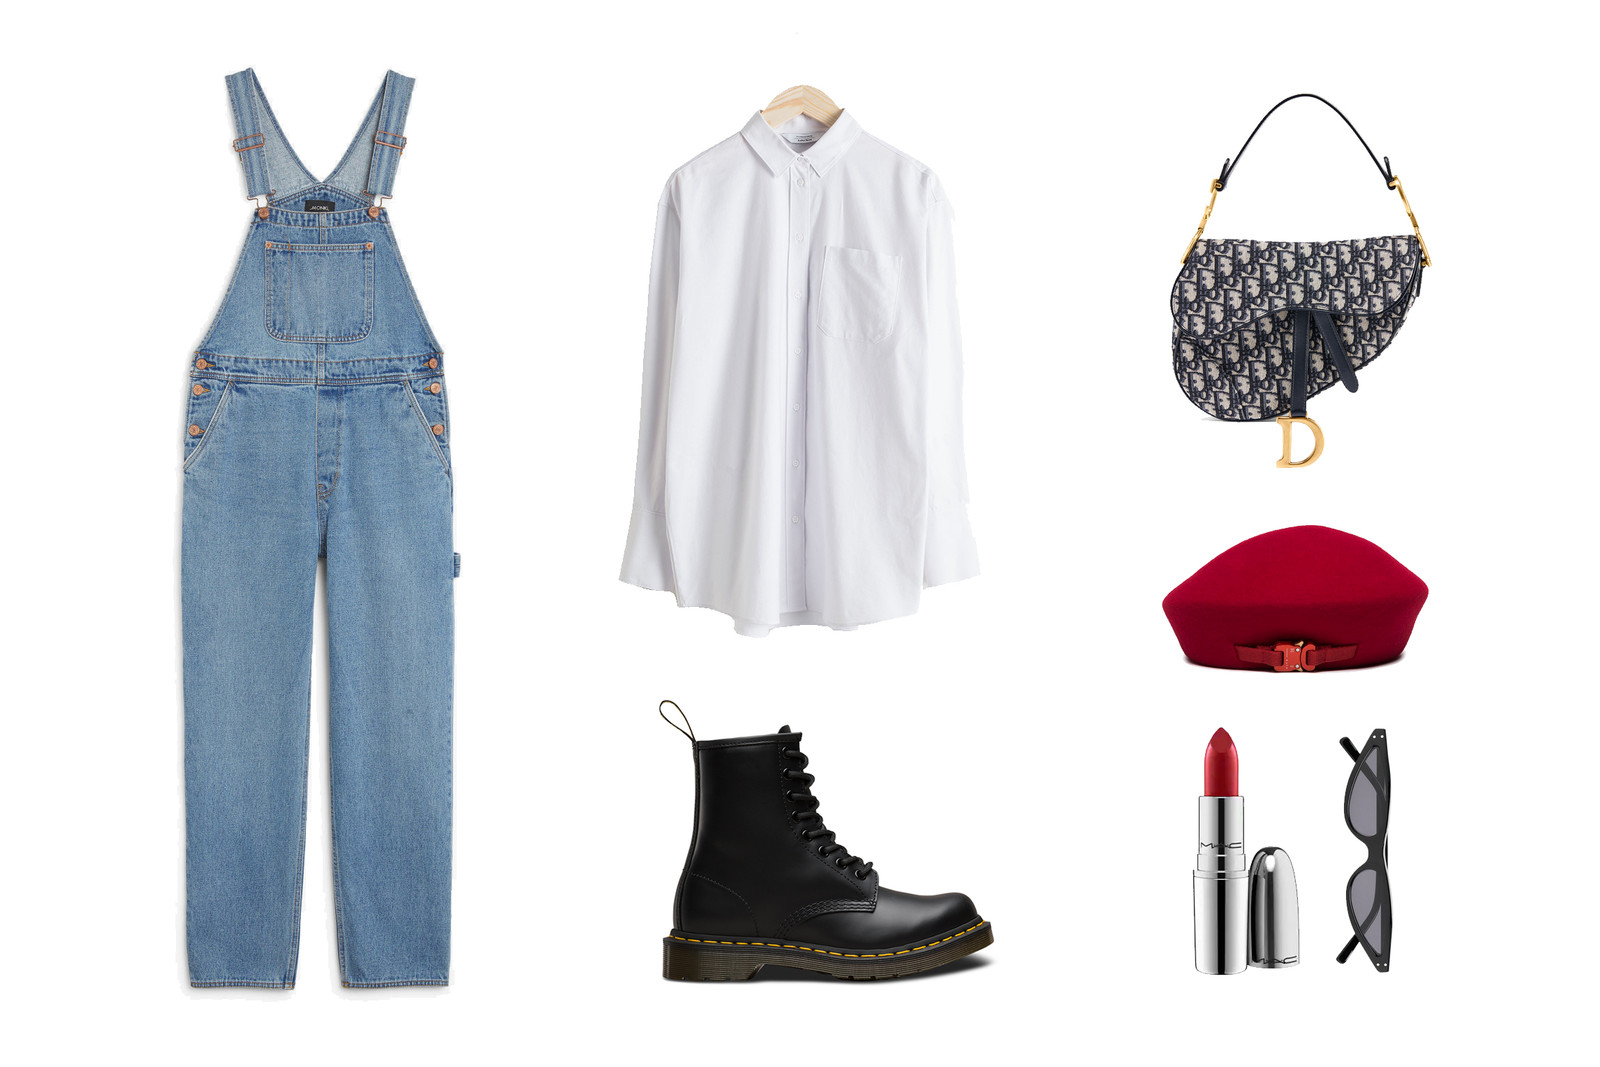 Blue Denim Dungarees Overalls Dior Dr Martens Outfit Inspiration Look Fashion Monki Mac